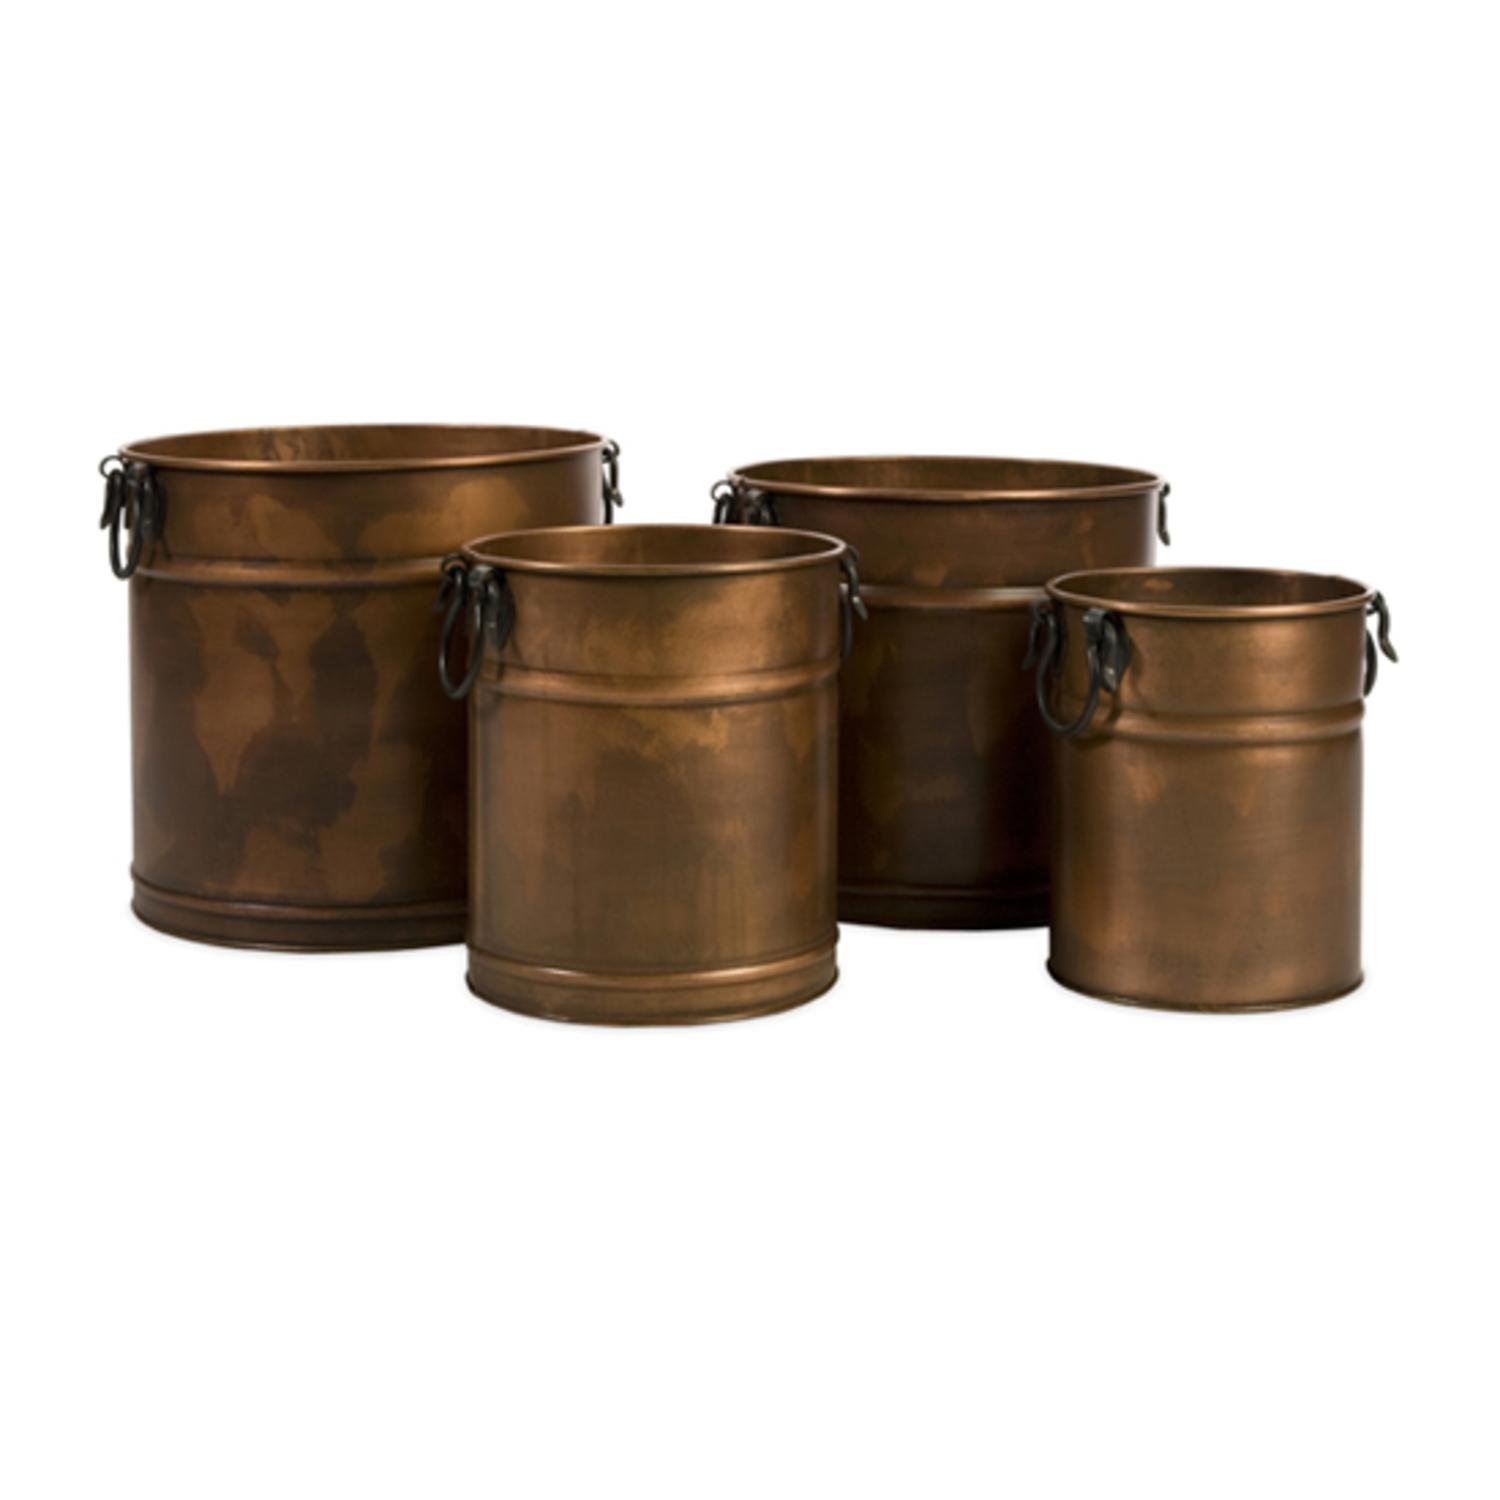 Set of 4 Antique Decorative Copper Planters with Iron Handles